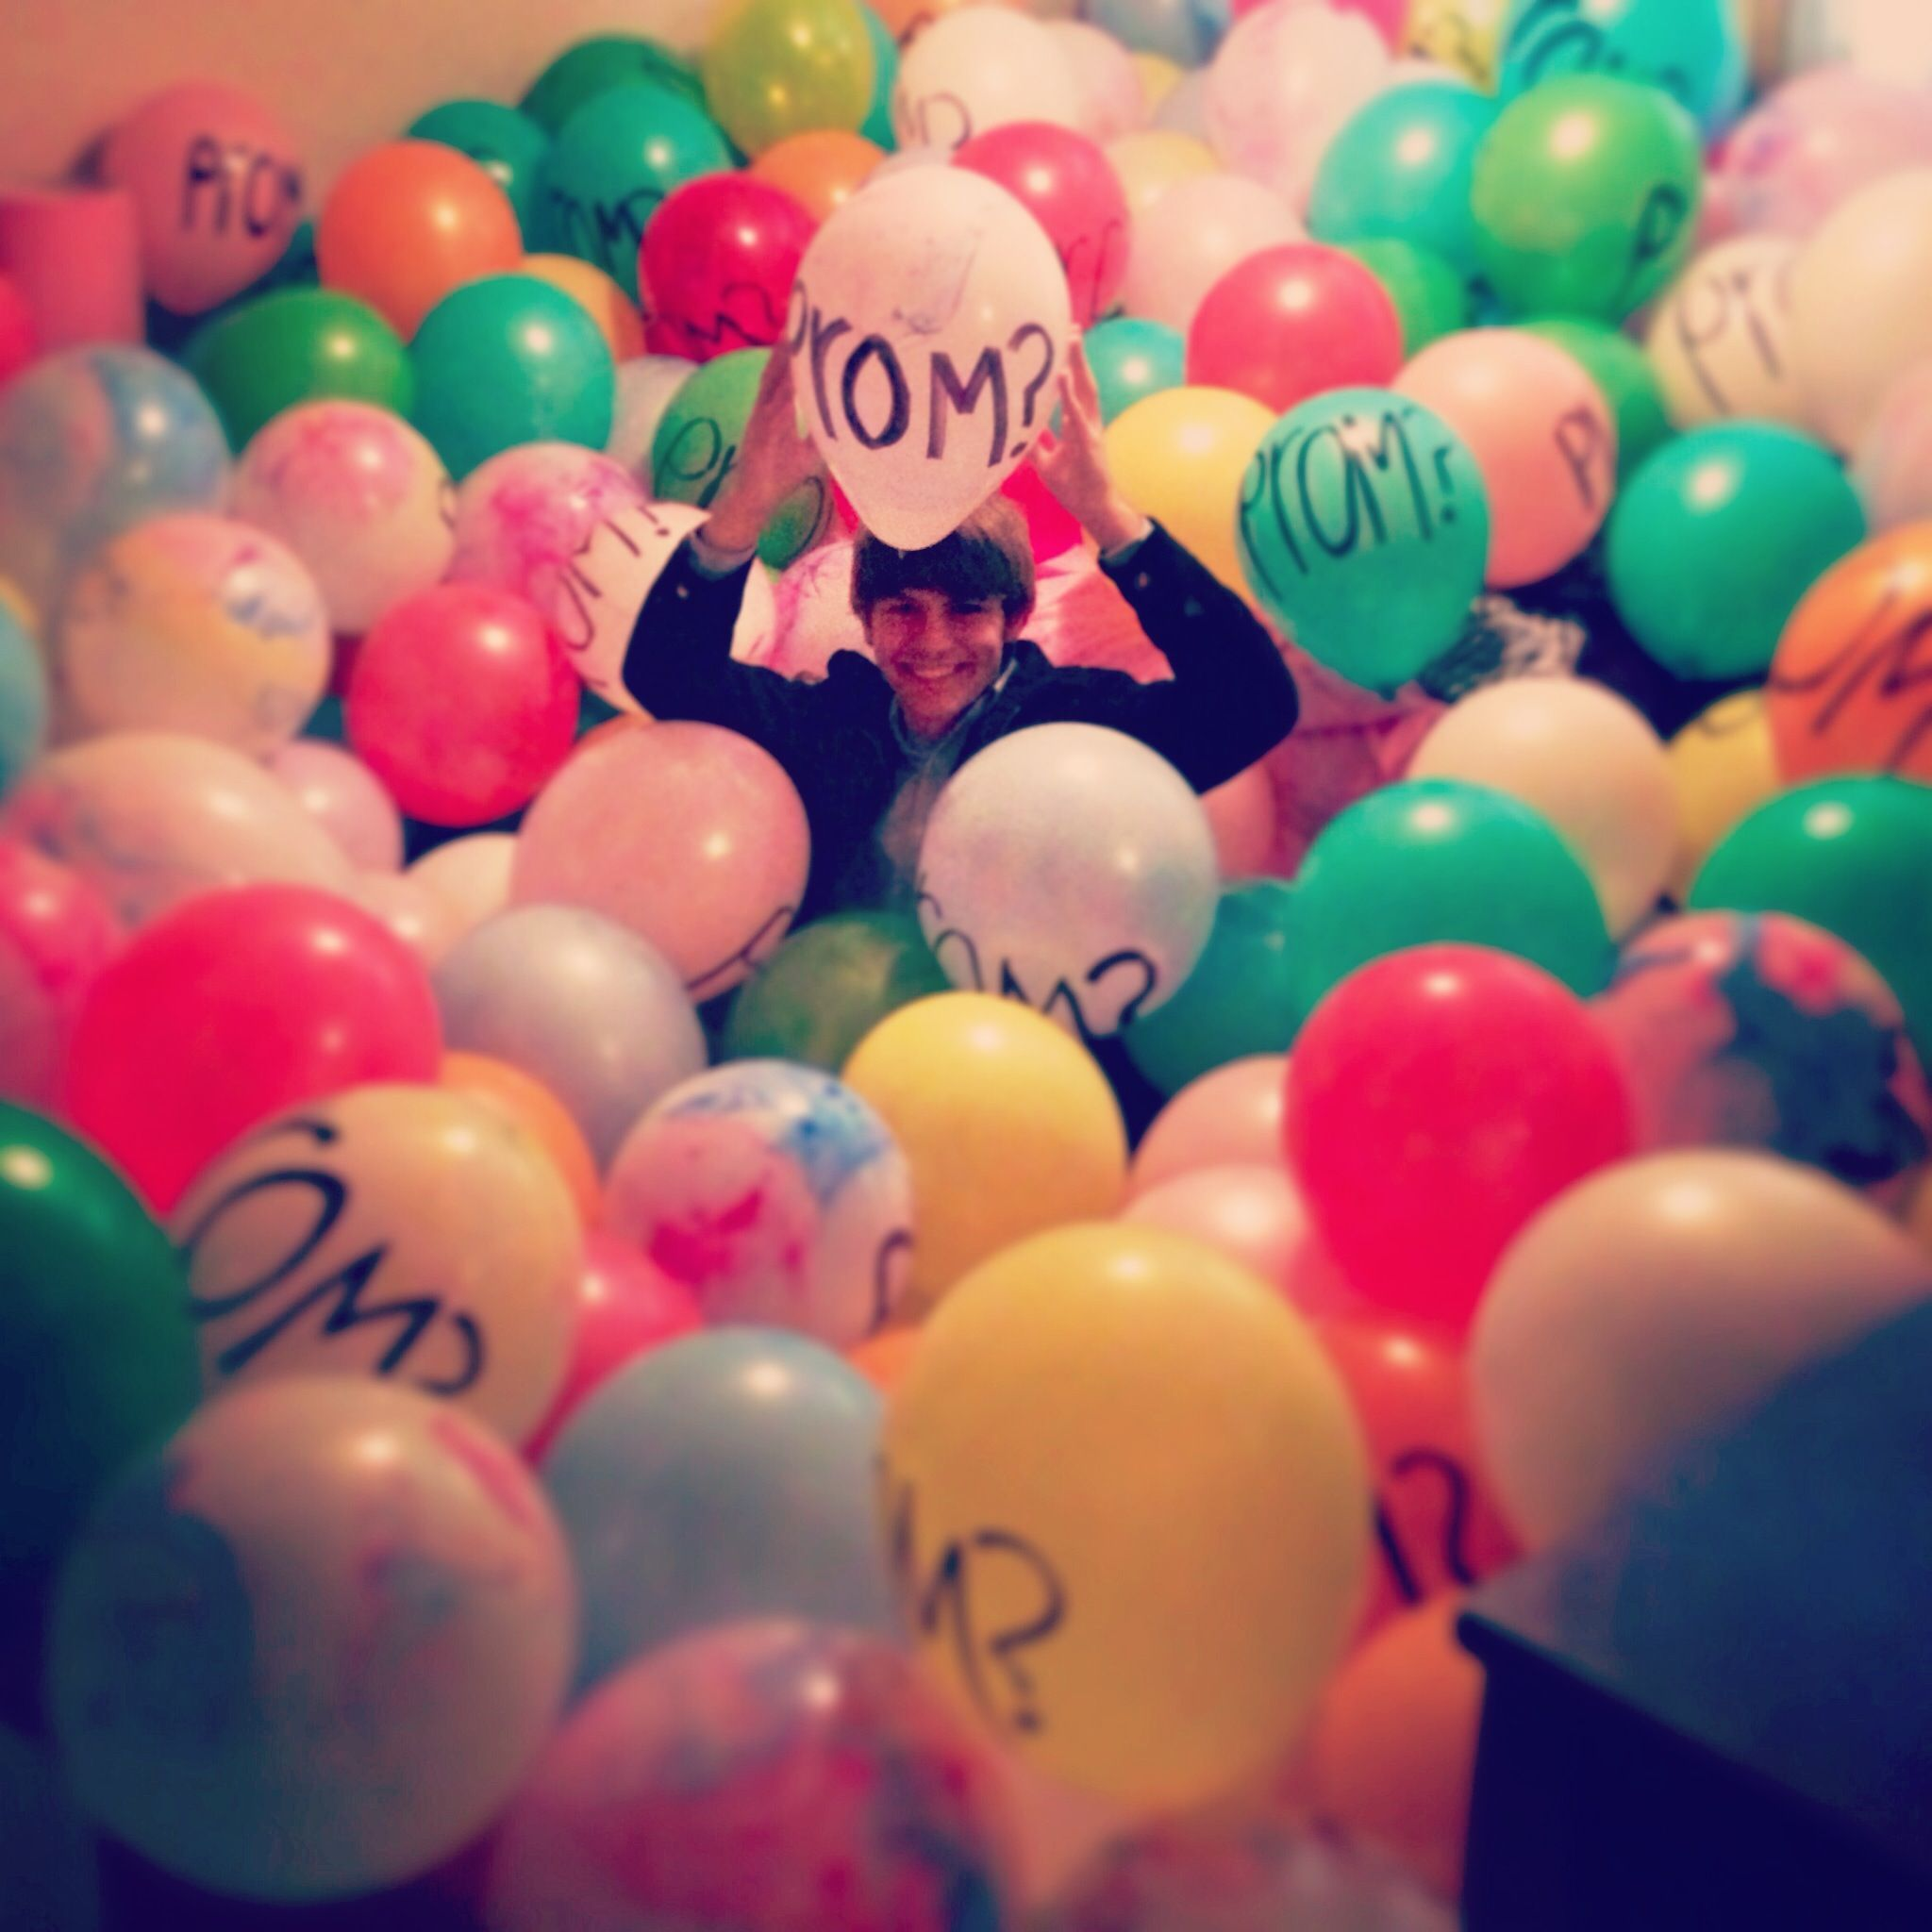 17 Best Images About Cute Prom Proposals On Pinterest Prom Photos, Go With  Me And